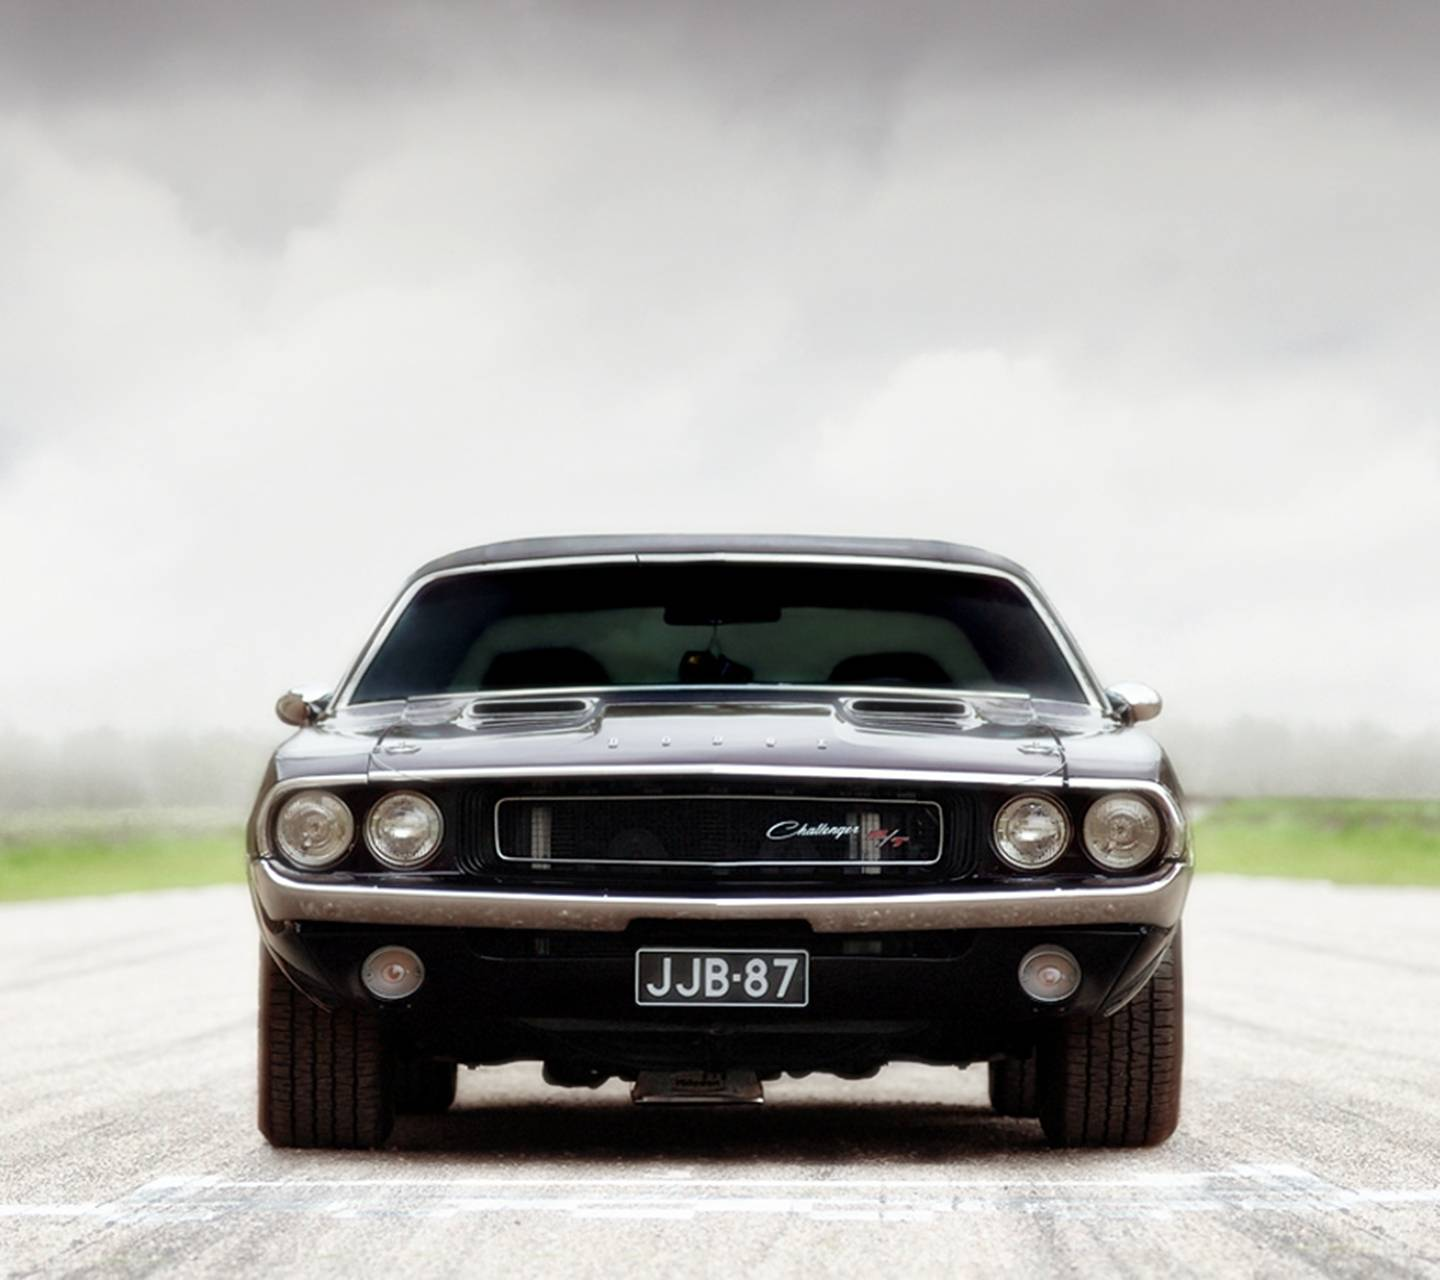 Dodge Challenger Wallpaper By Julianna 47 Free On Zedge